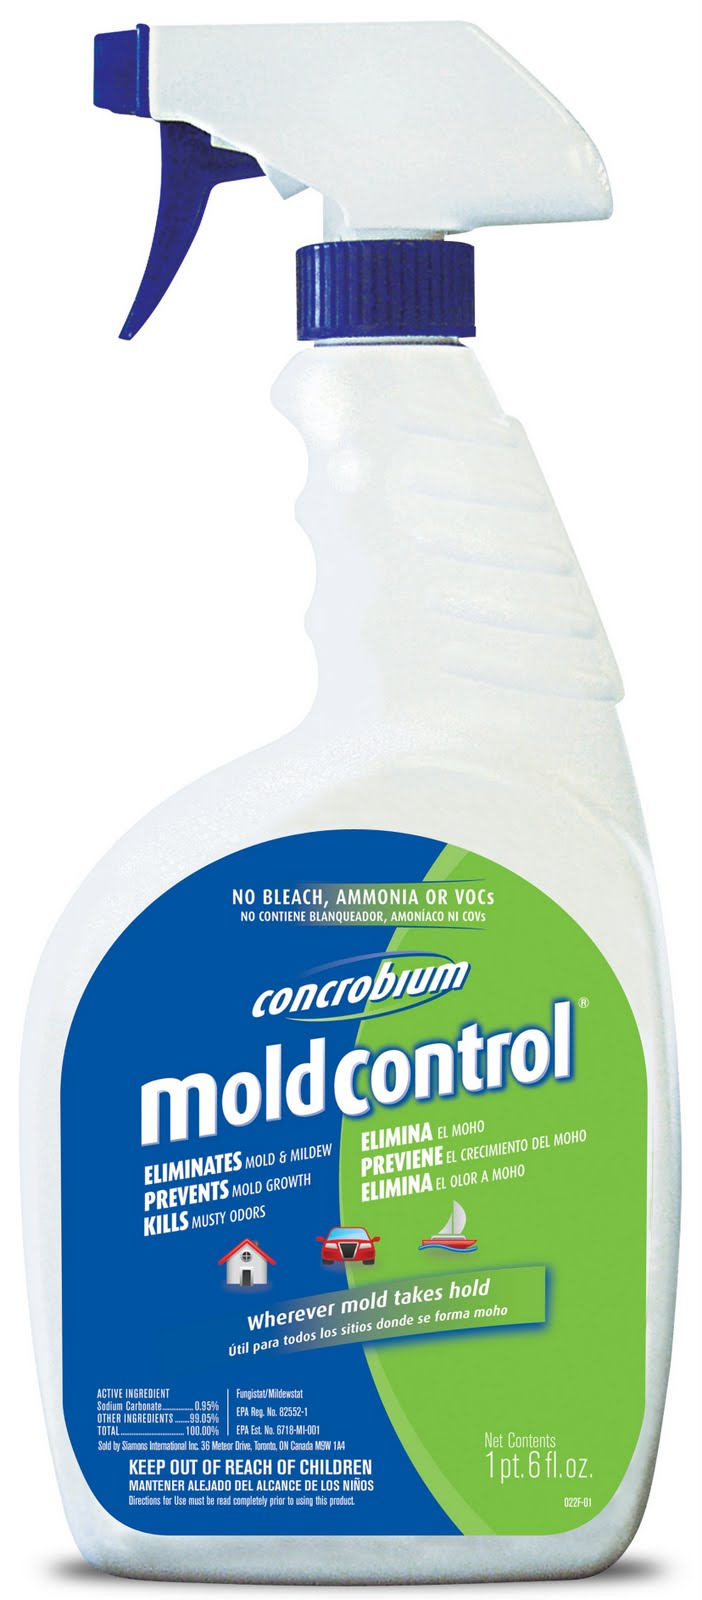 fighting mould - mold control